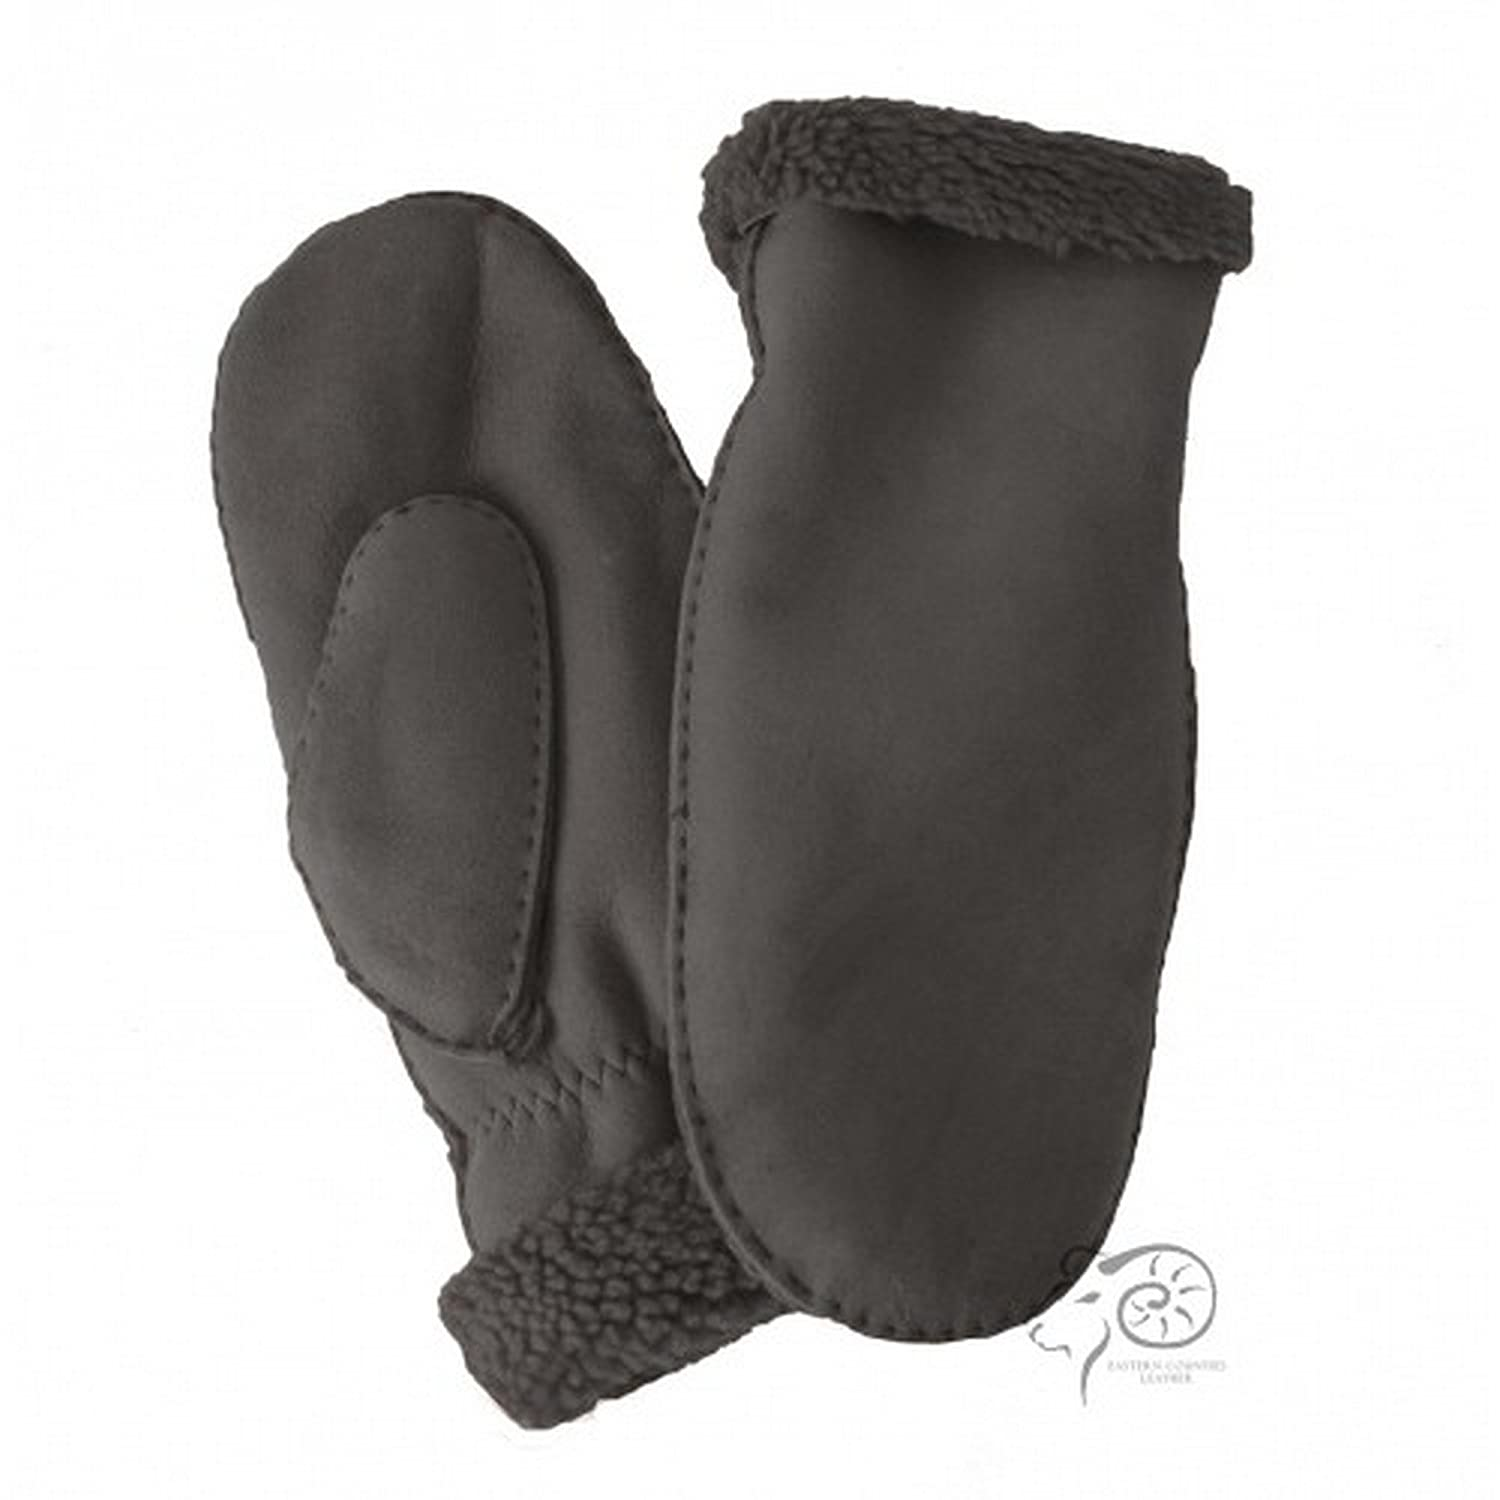 Eastern Counties Leather Womens/Ladies Full Hand Sheepskin Mittens (One size) (Brown Tipped) UTEL219_3